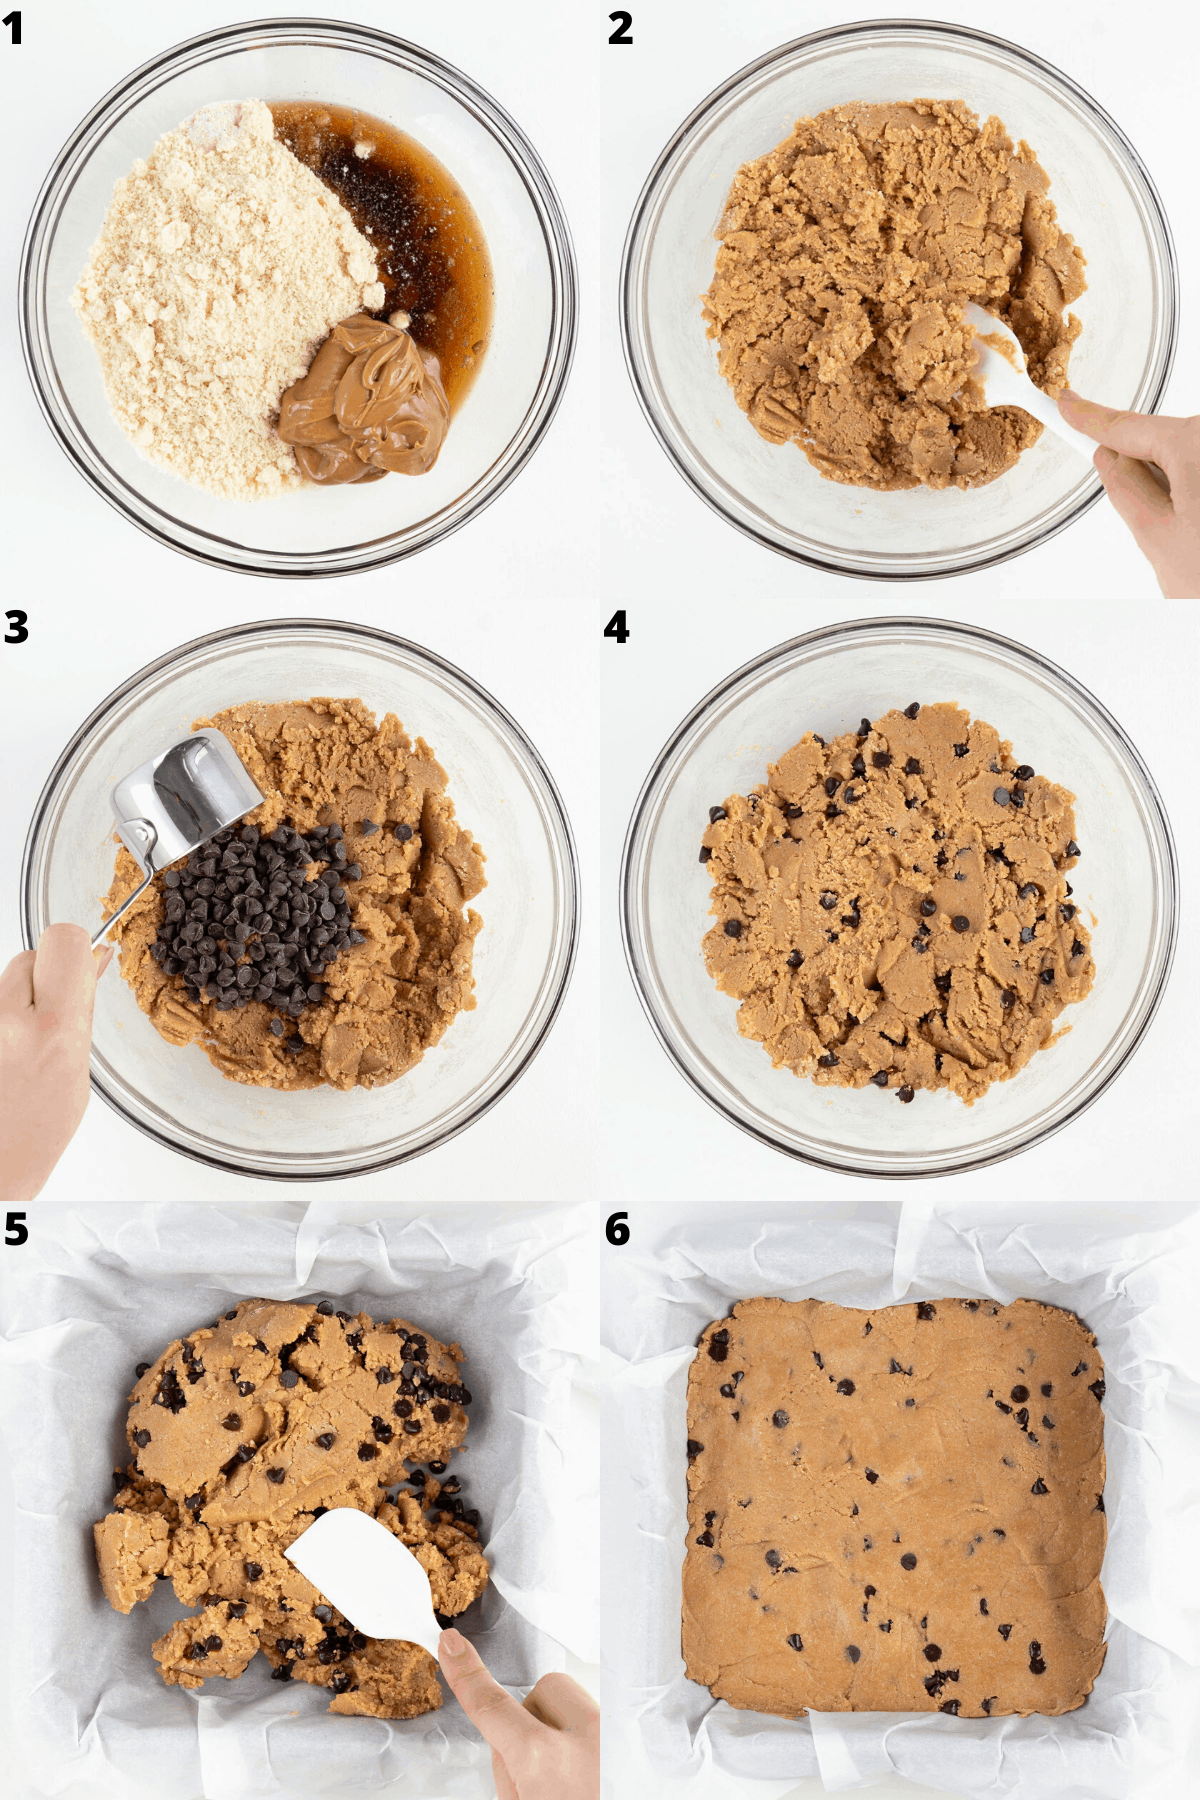 a collage of six step-by-step images showing the process of mixing ingredients in a glass bowl and pressing the dough into a square baking sheet